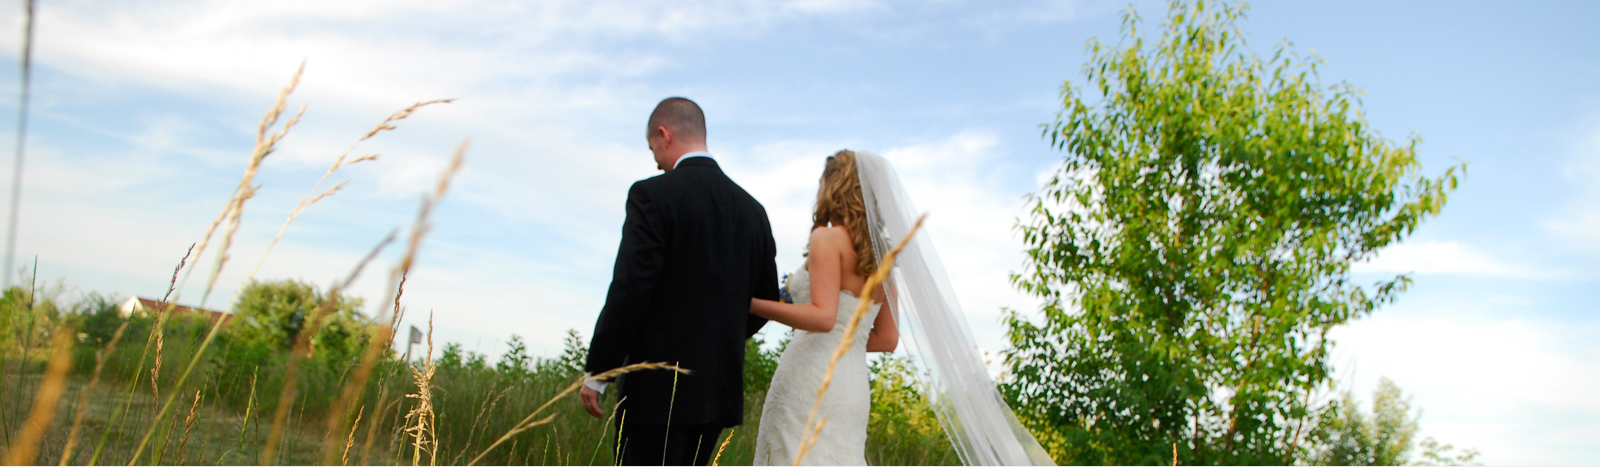 Weddings & Private Events Header